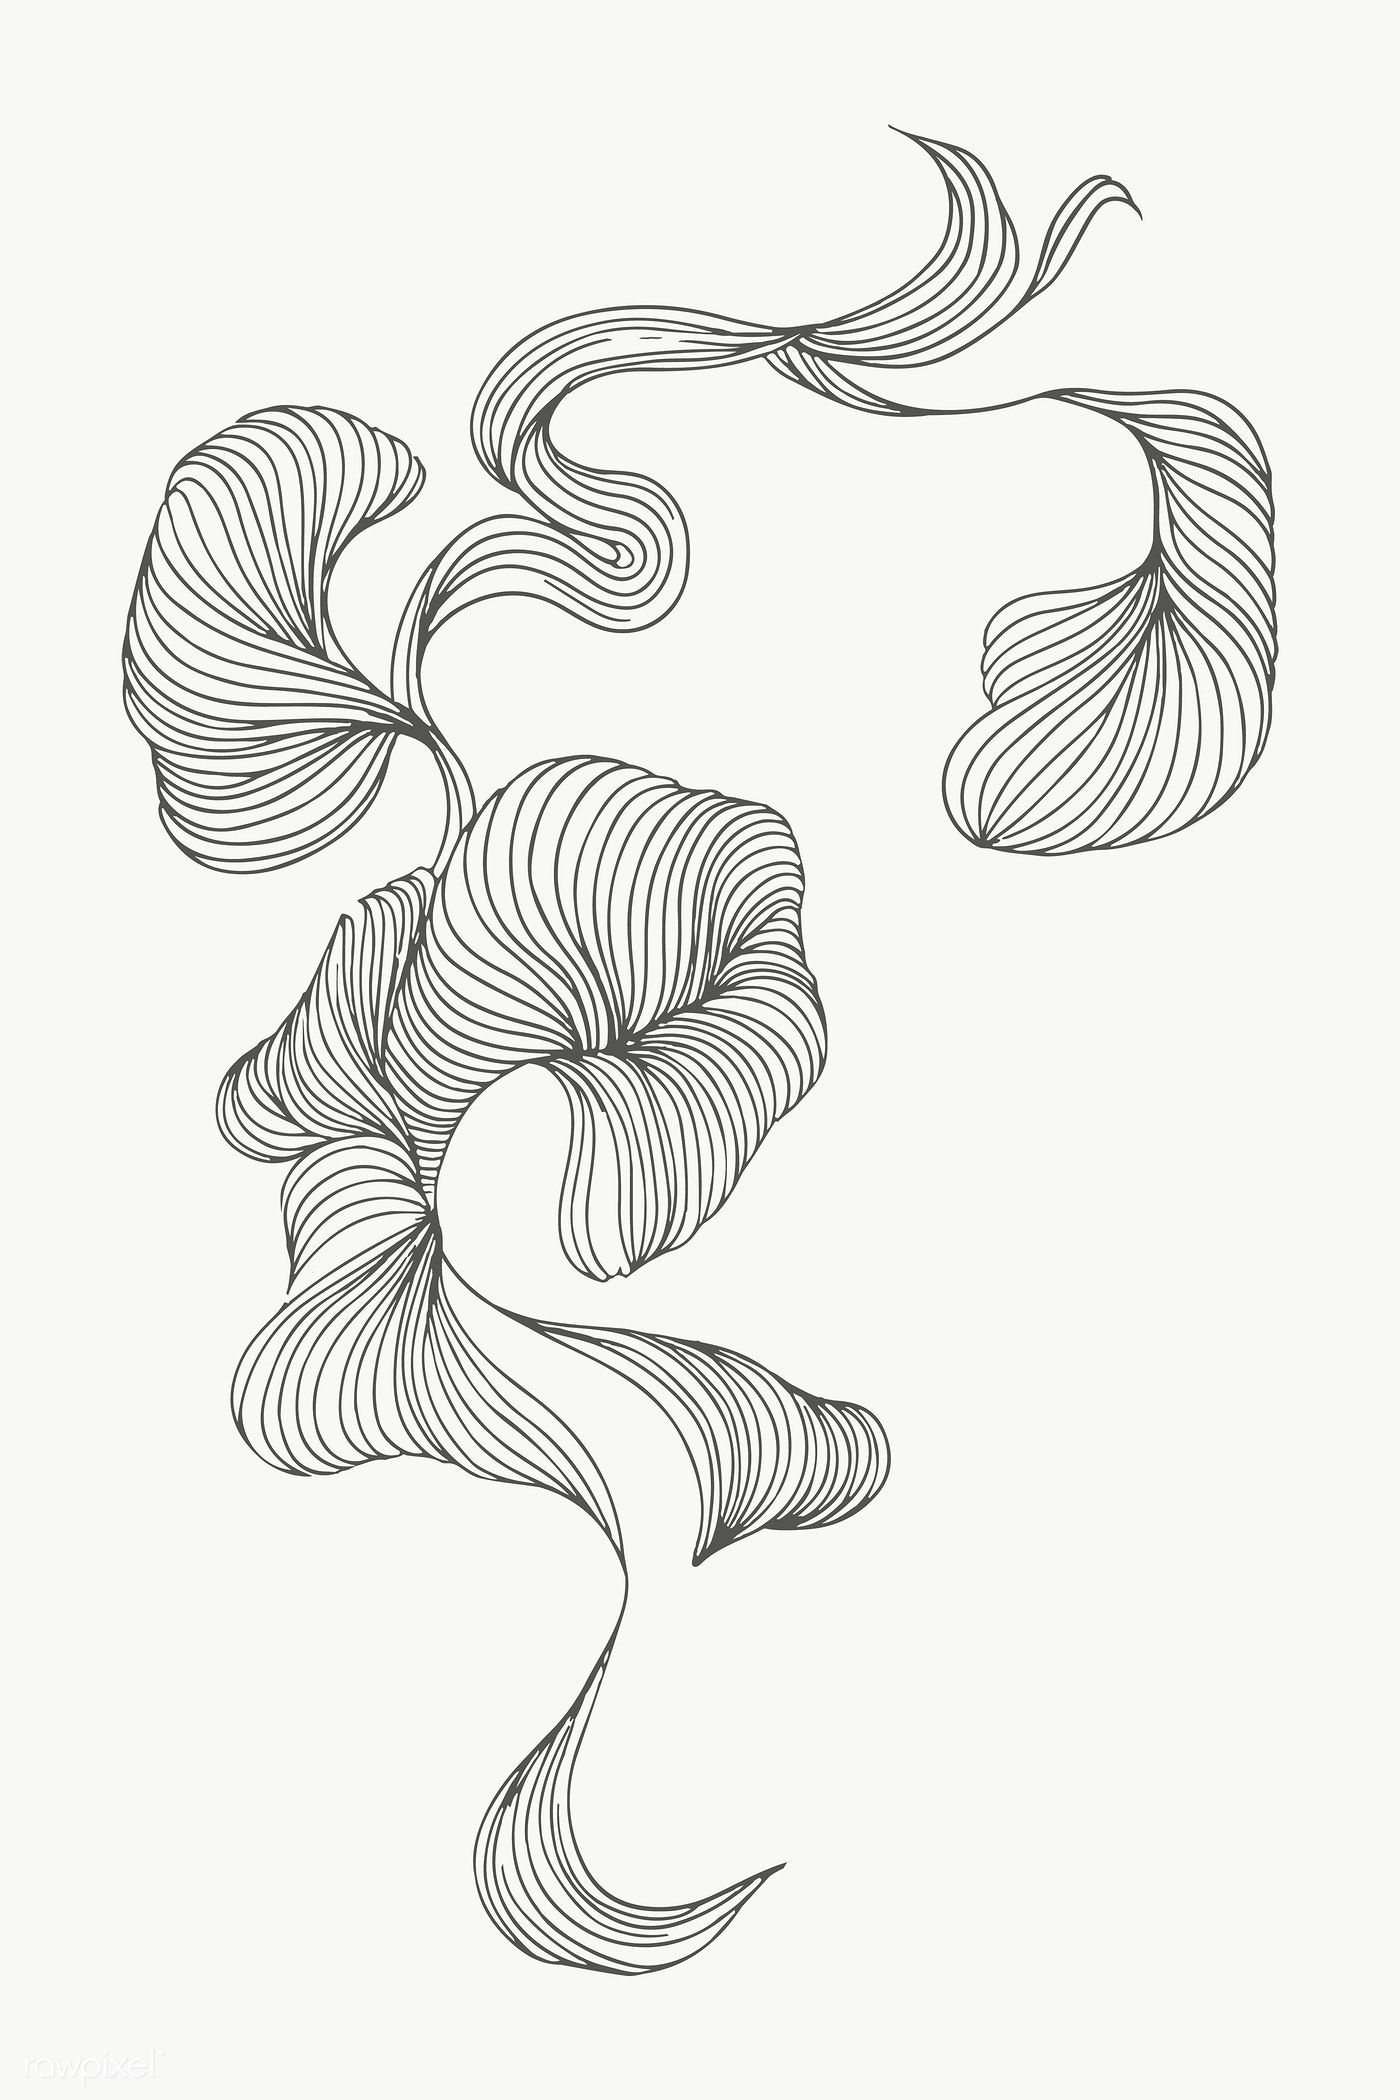 Swirly Abstract Art Design Transparent Png Premium Image By Rawpixel Com Nunny Line Art Drawings Abstract Line Art Abstract Art Collection